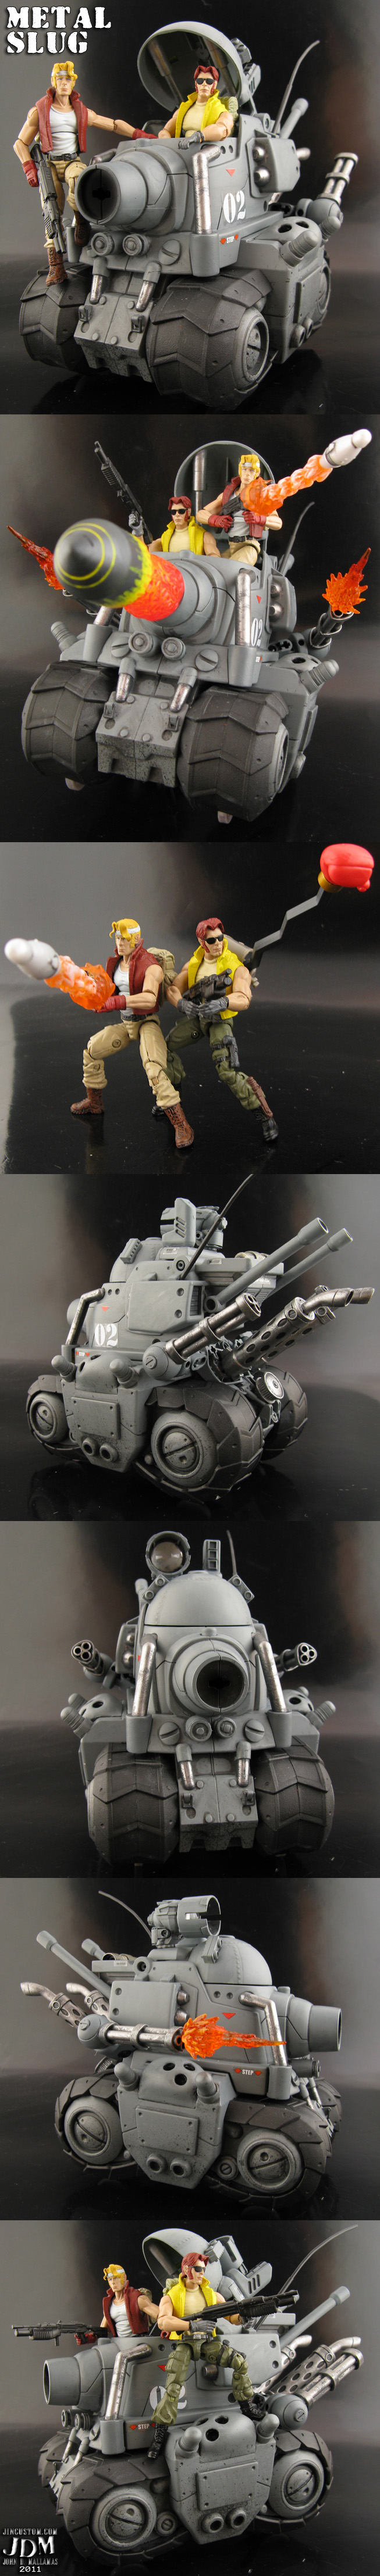 Custom Metal Slug Tank